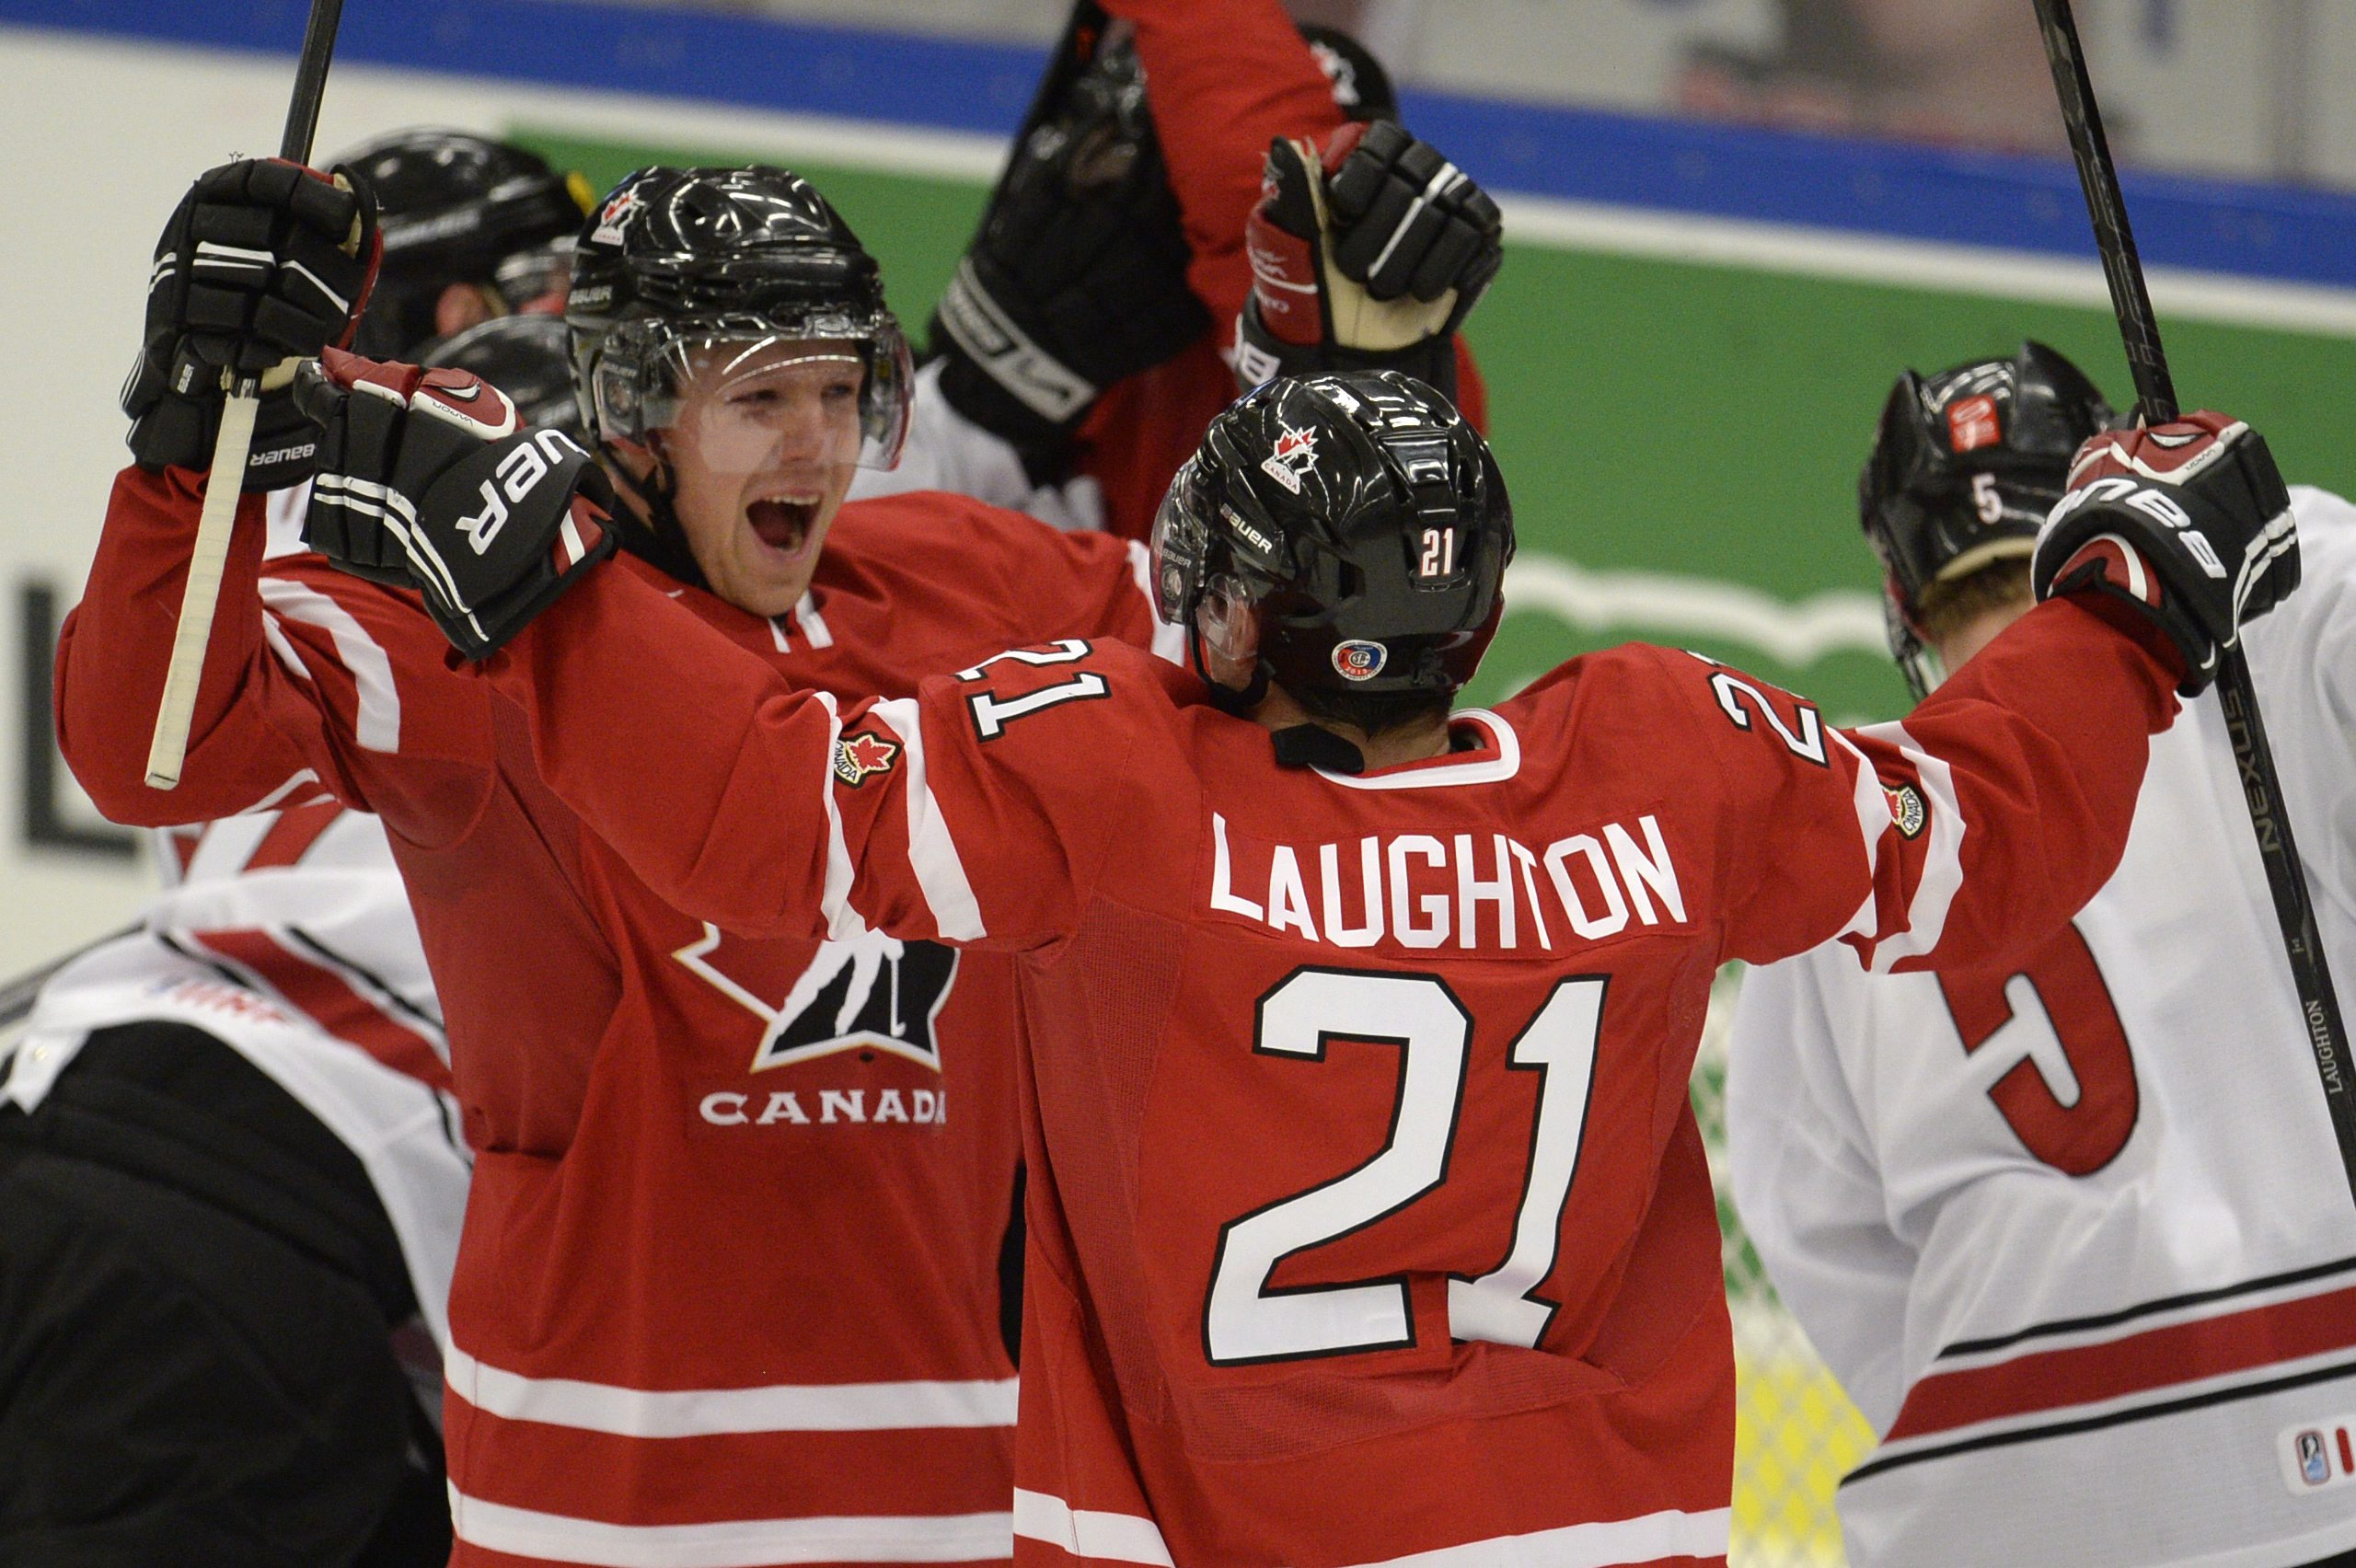 Canada's Griffin Reinhart, left, and Scott Laughton (21) celebrate Canada's first goal during first period action in a quarterfinal match at the world junior hockey tournament in Malmo, Sweden, Thursday, Jan 2, 2014. (AP Photo/The Canadian Press, Frank Gunn)